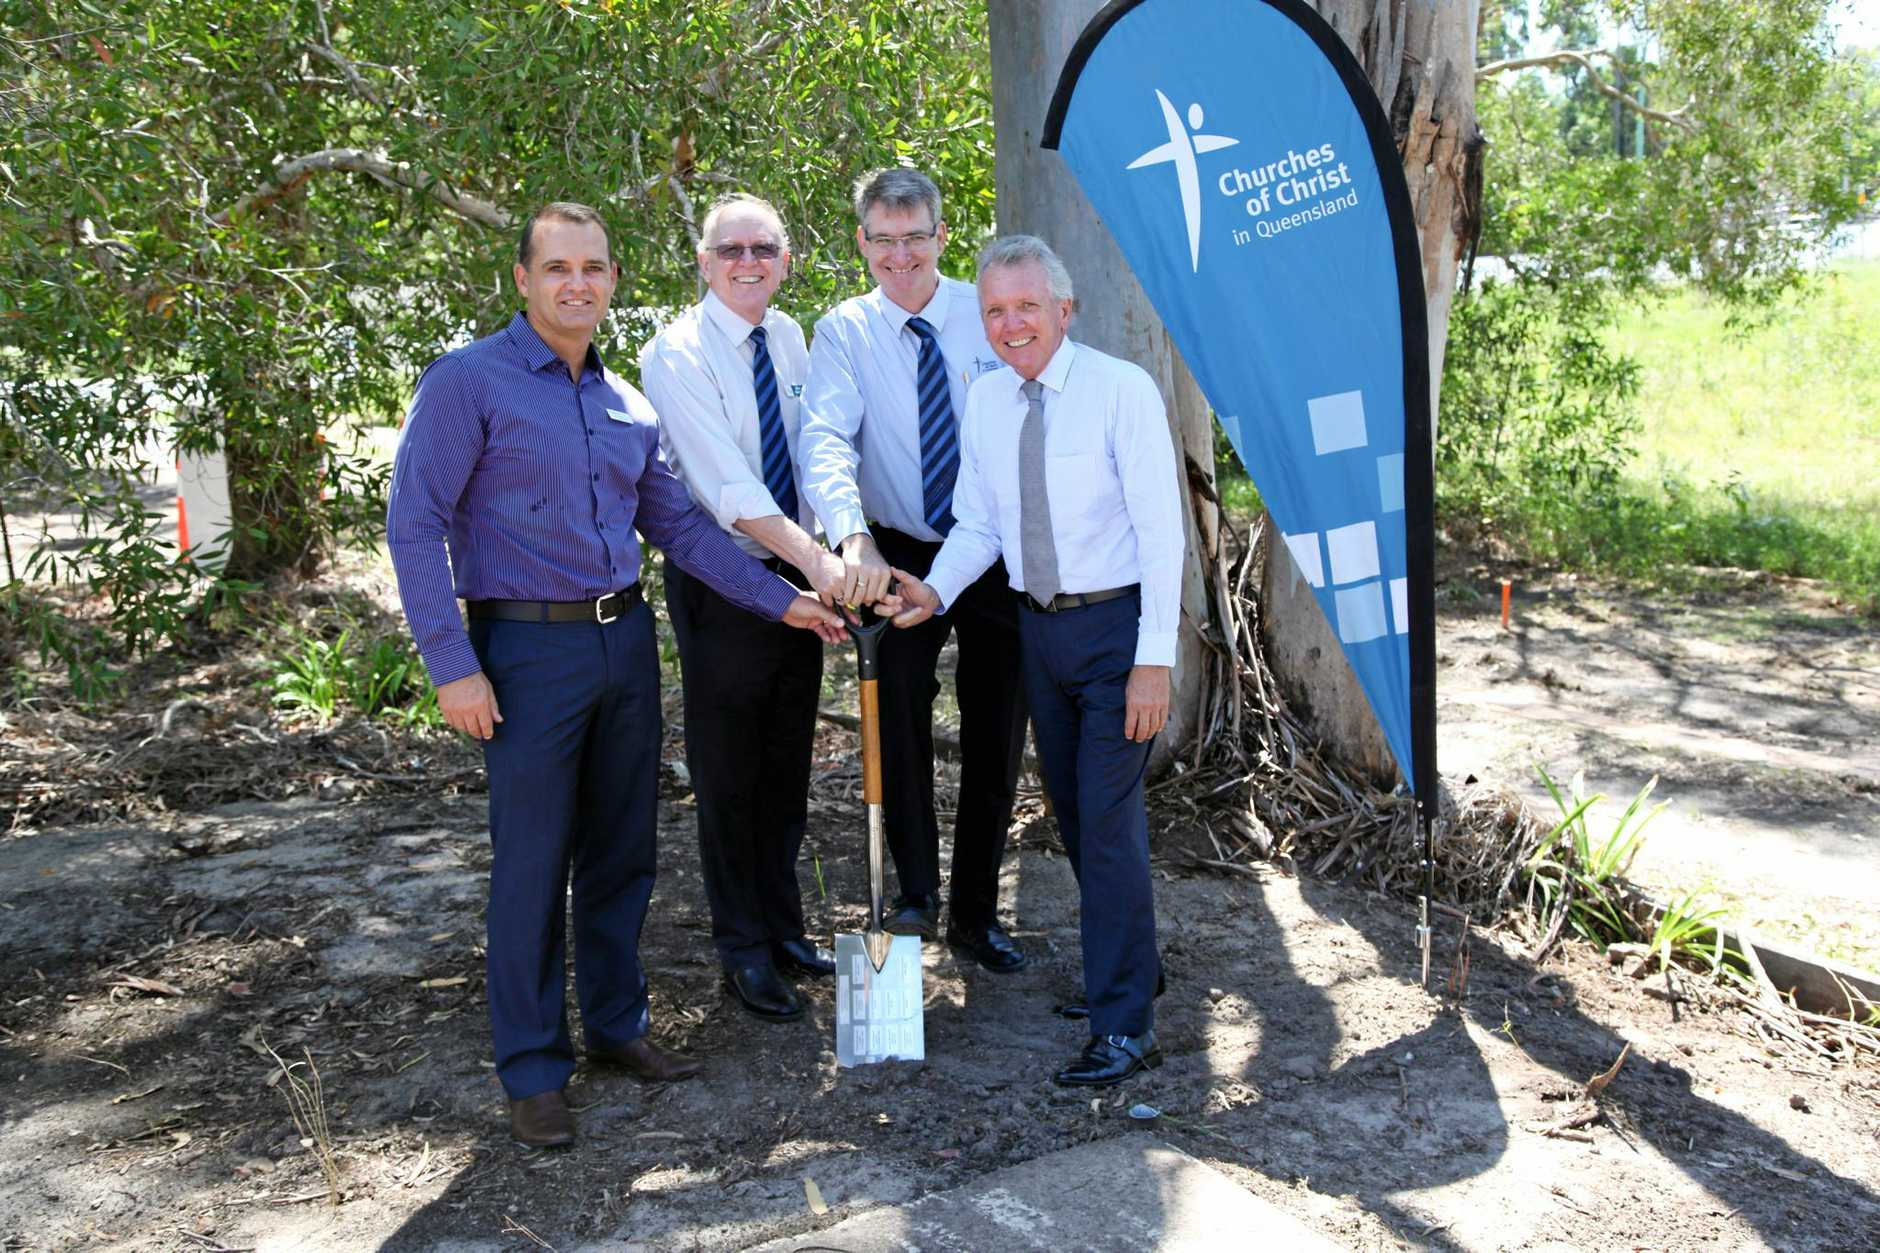 Councillor Peter Cox, Churches of Christ in Queensland chief mission development officer Gerry Weatherall, acting chief executive officer  David Swain, and Caloundra MP Mark McArdle.